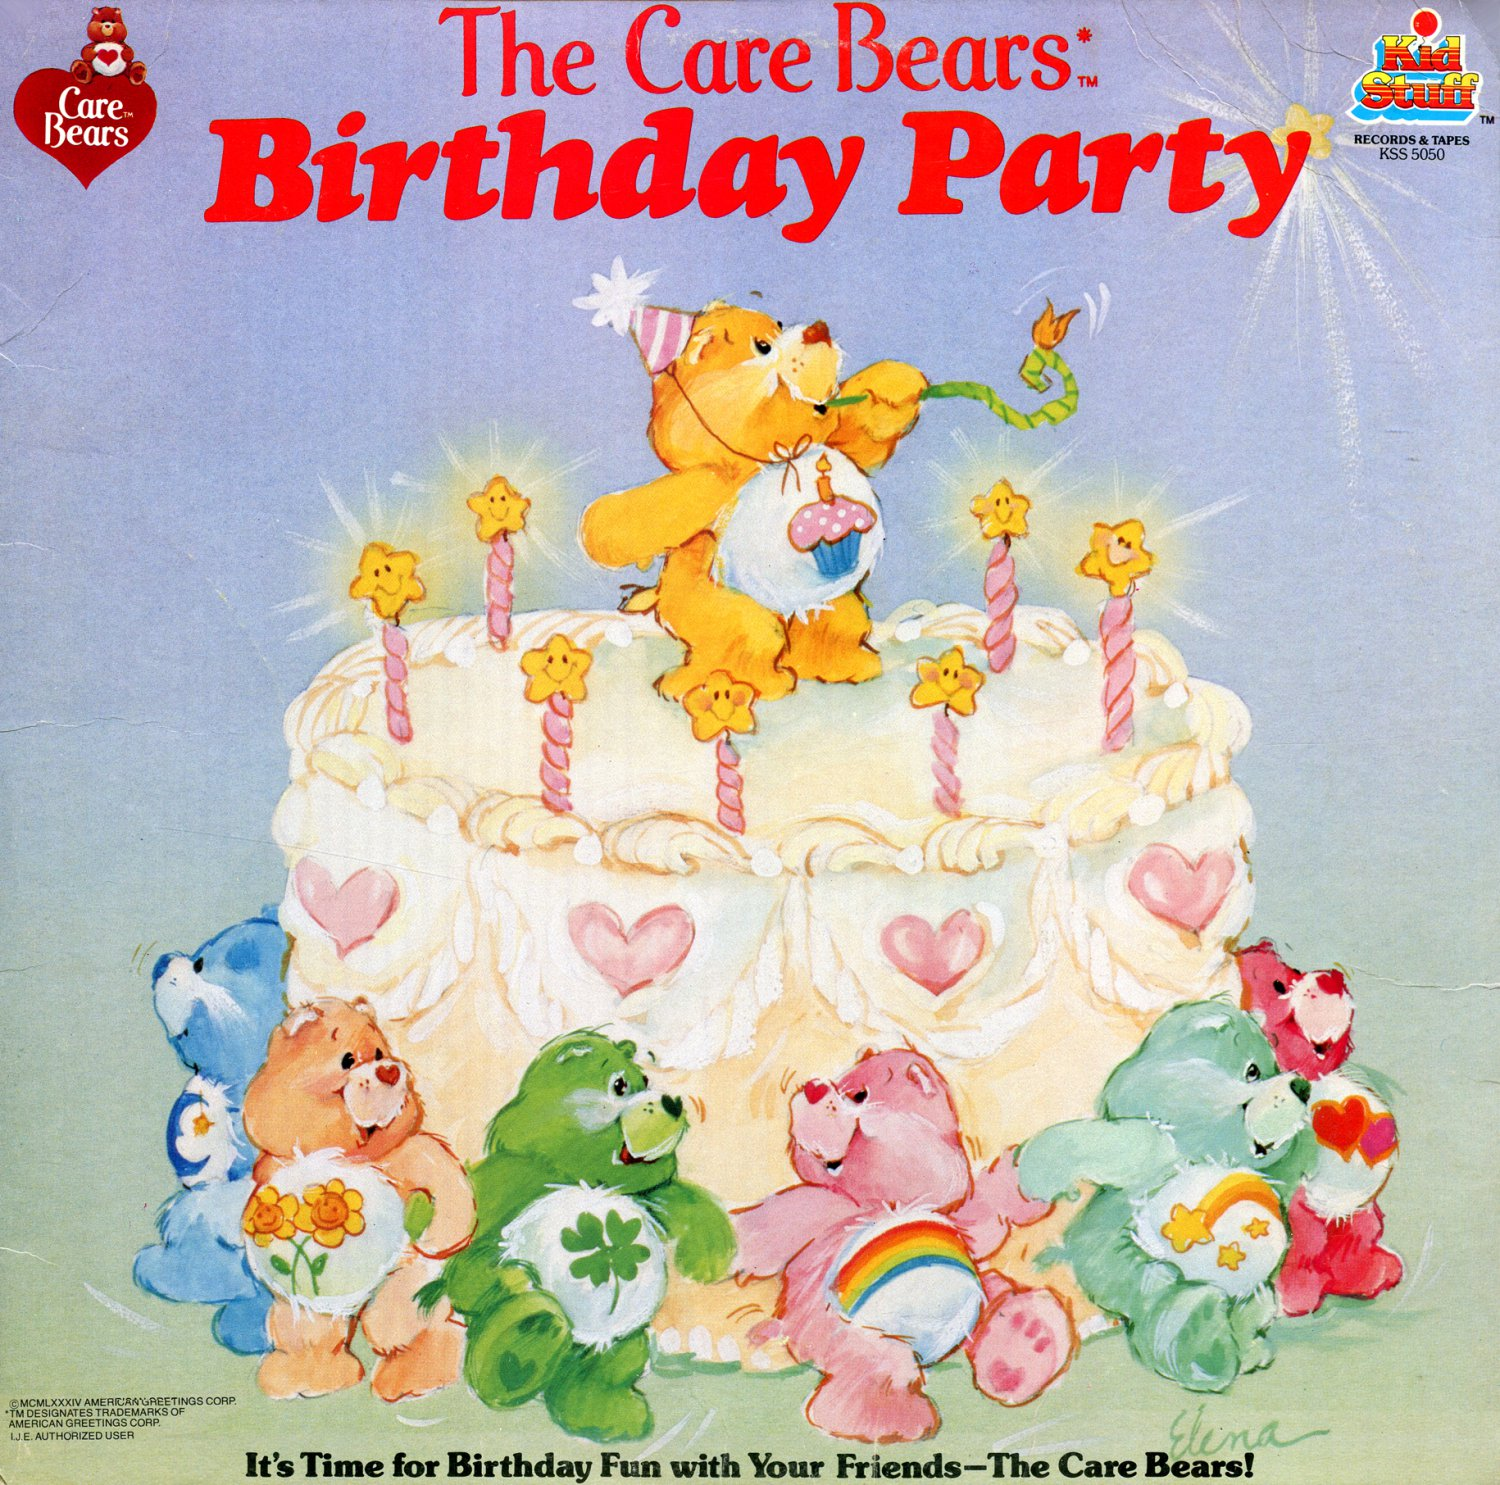 The Care Bears Birthday Party